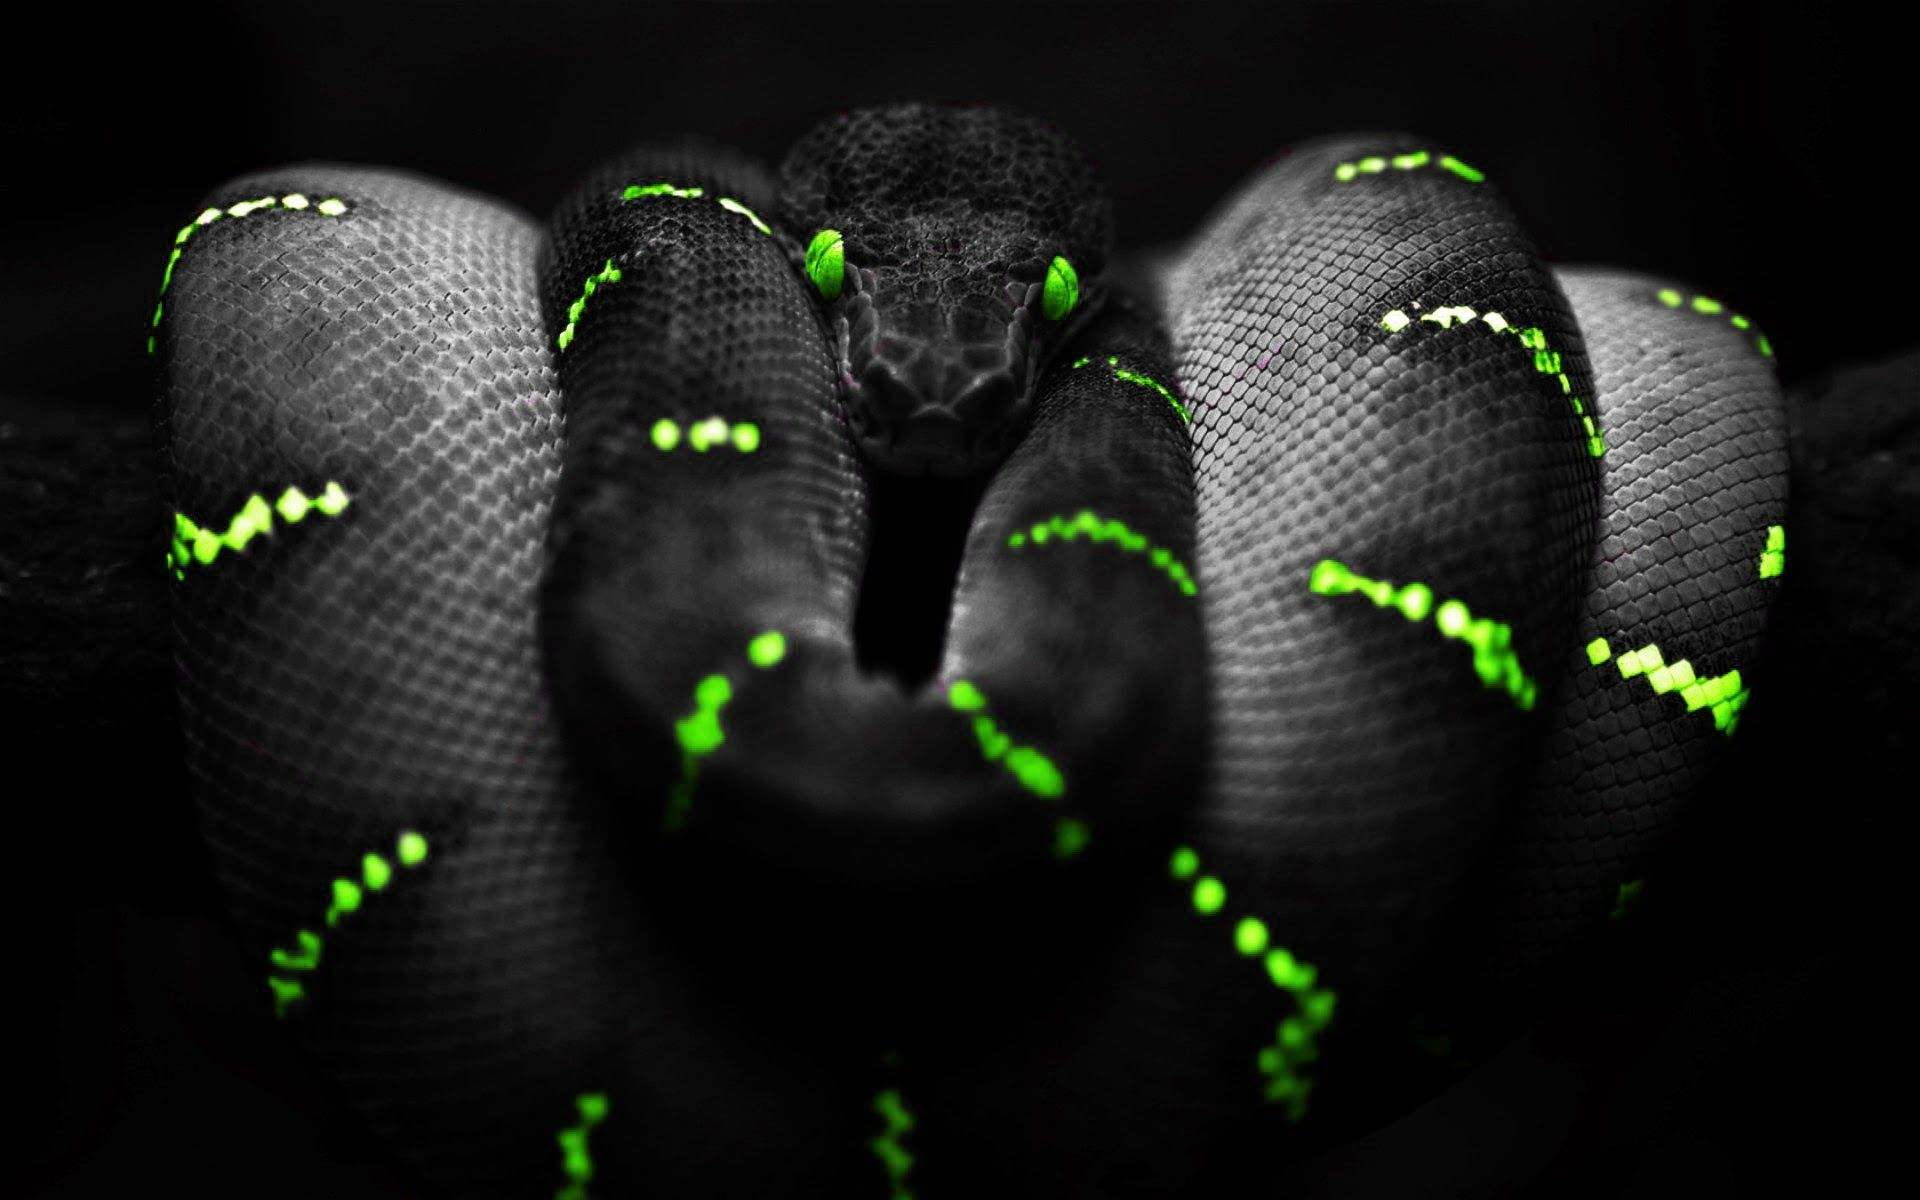 Black Mamba Wallpapers Animal Hq Black Mamba Pictures 4k Wallpapers 2019